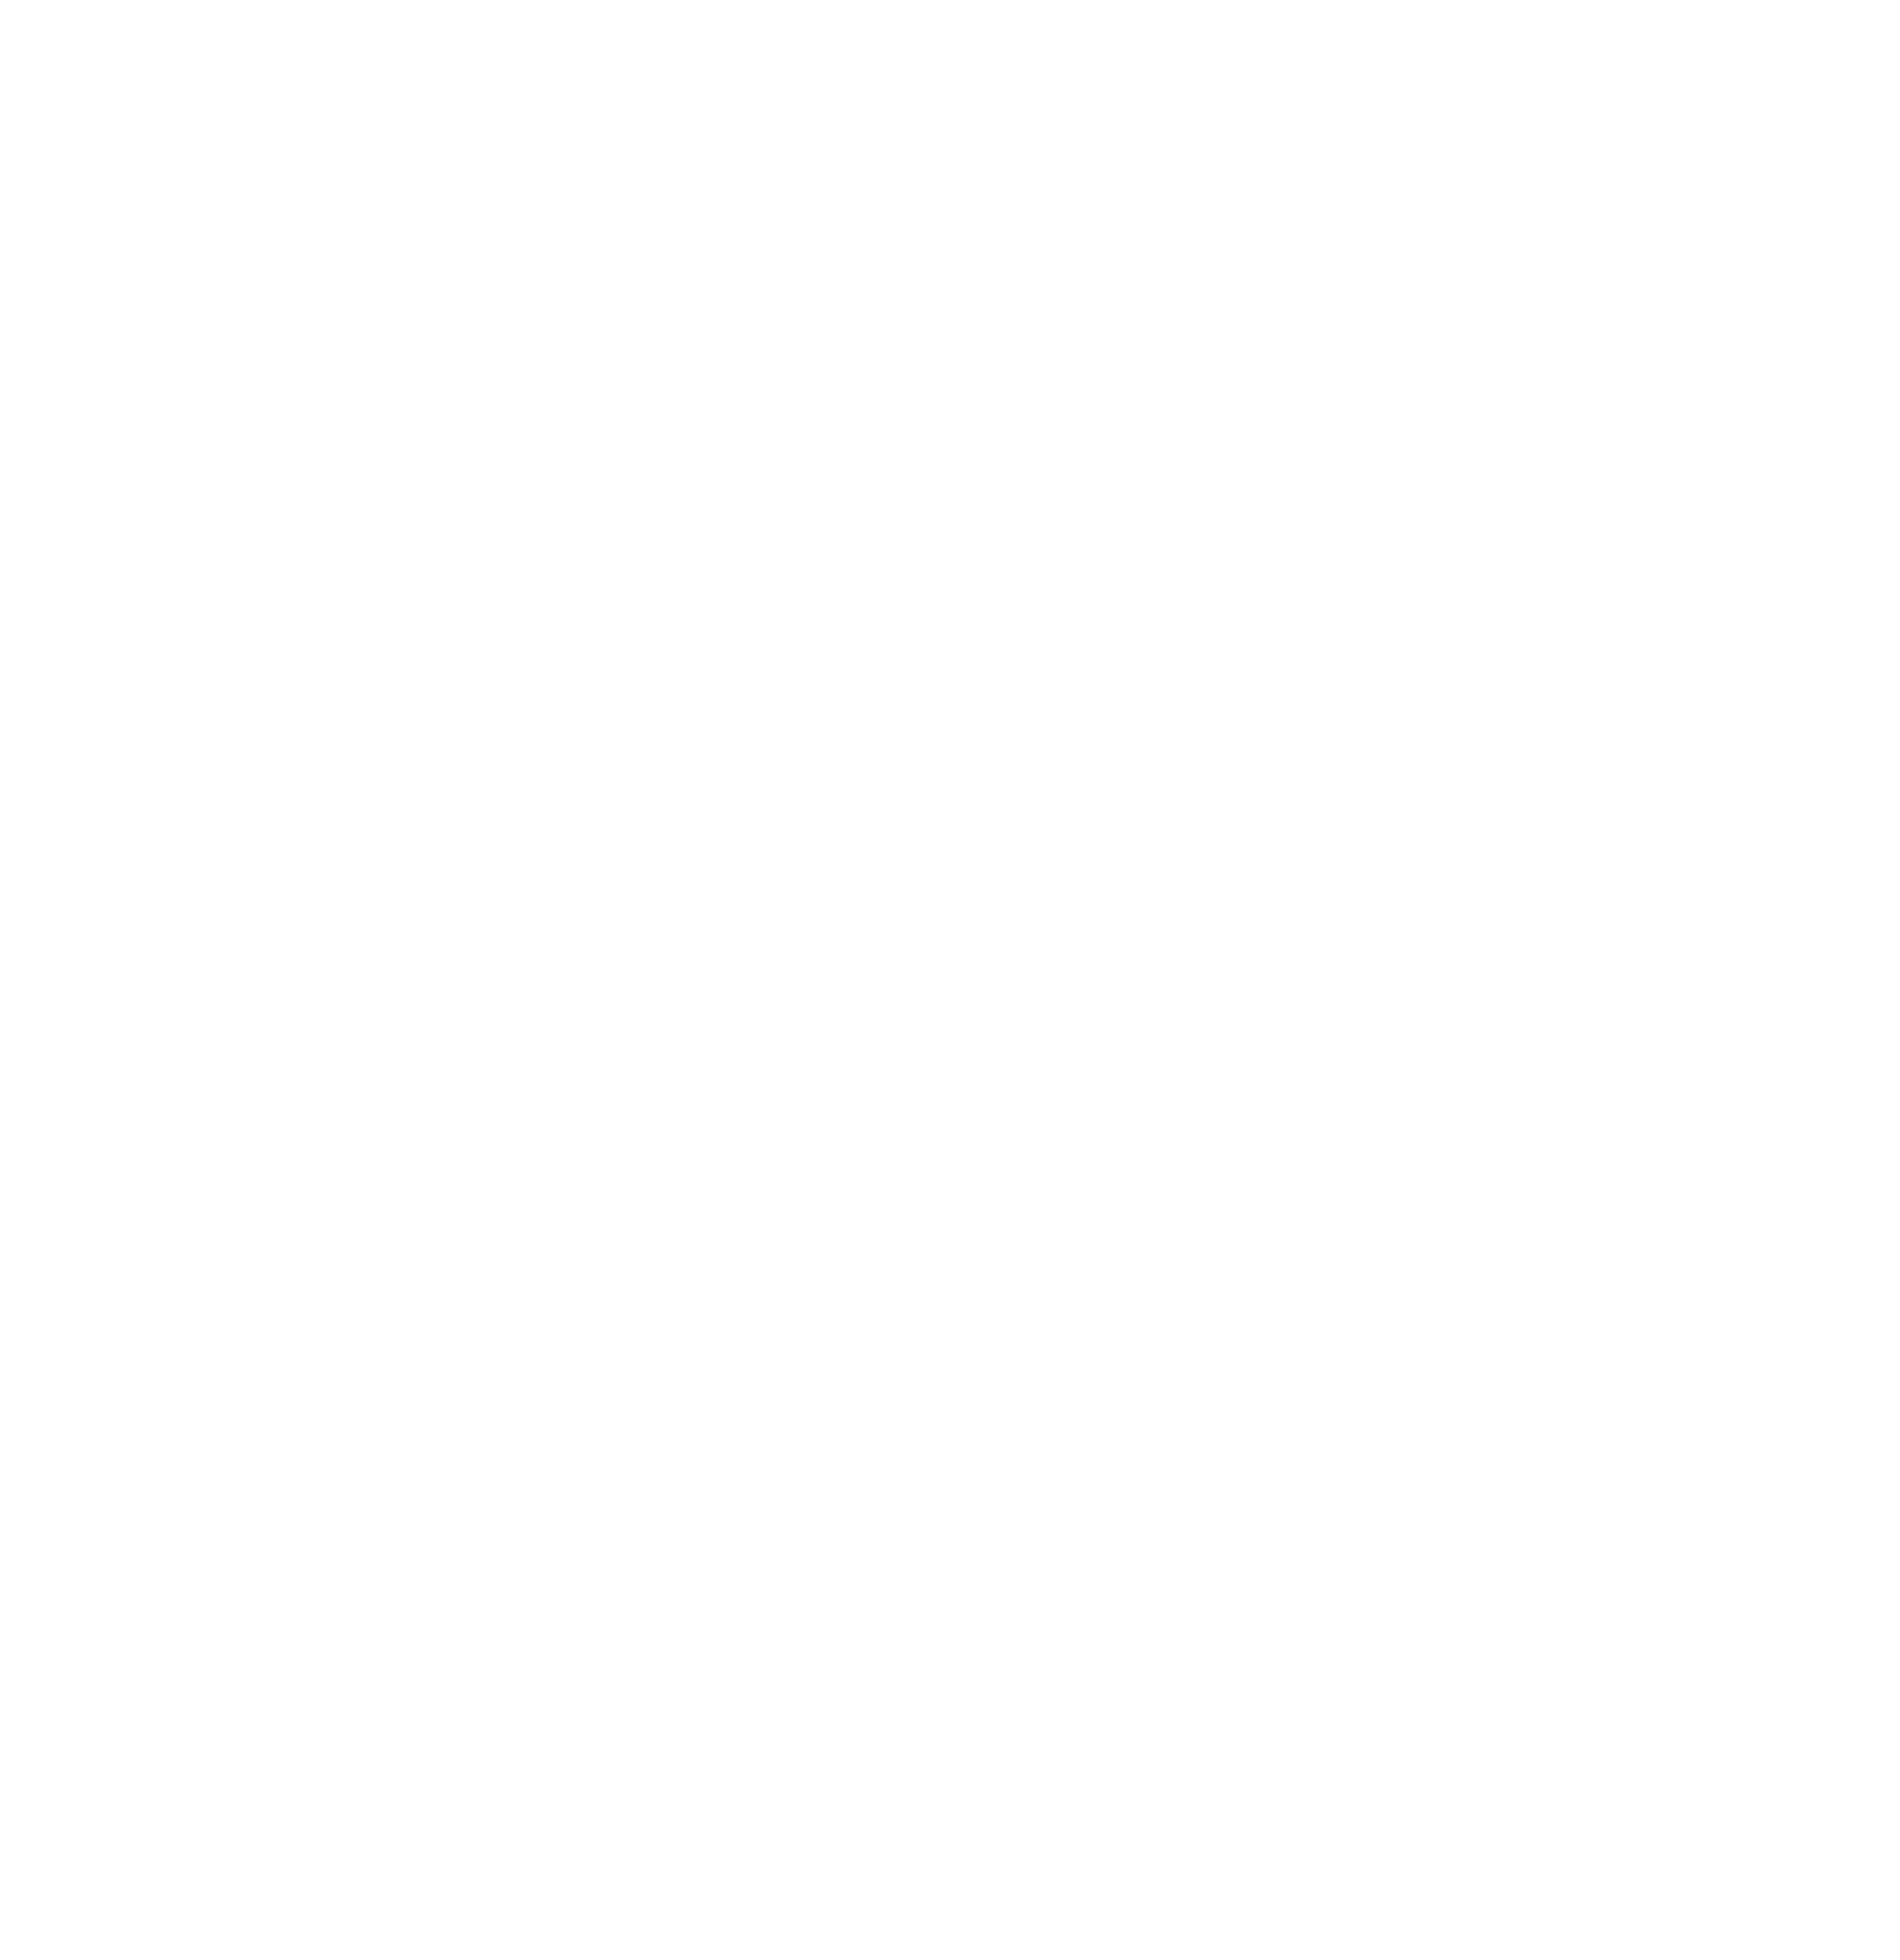 Holiday Visa - Get a low rate you can keep until the balance is paid in full! Offer ends 12/31.